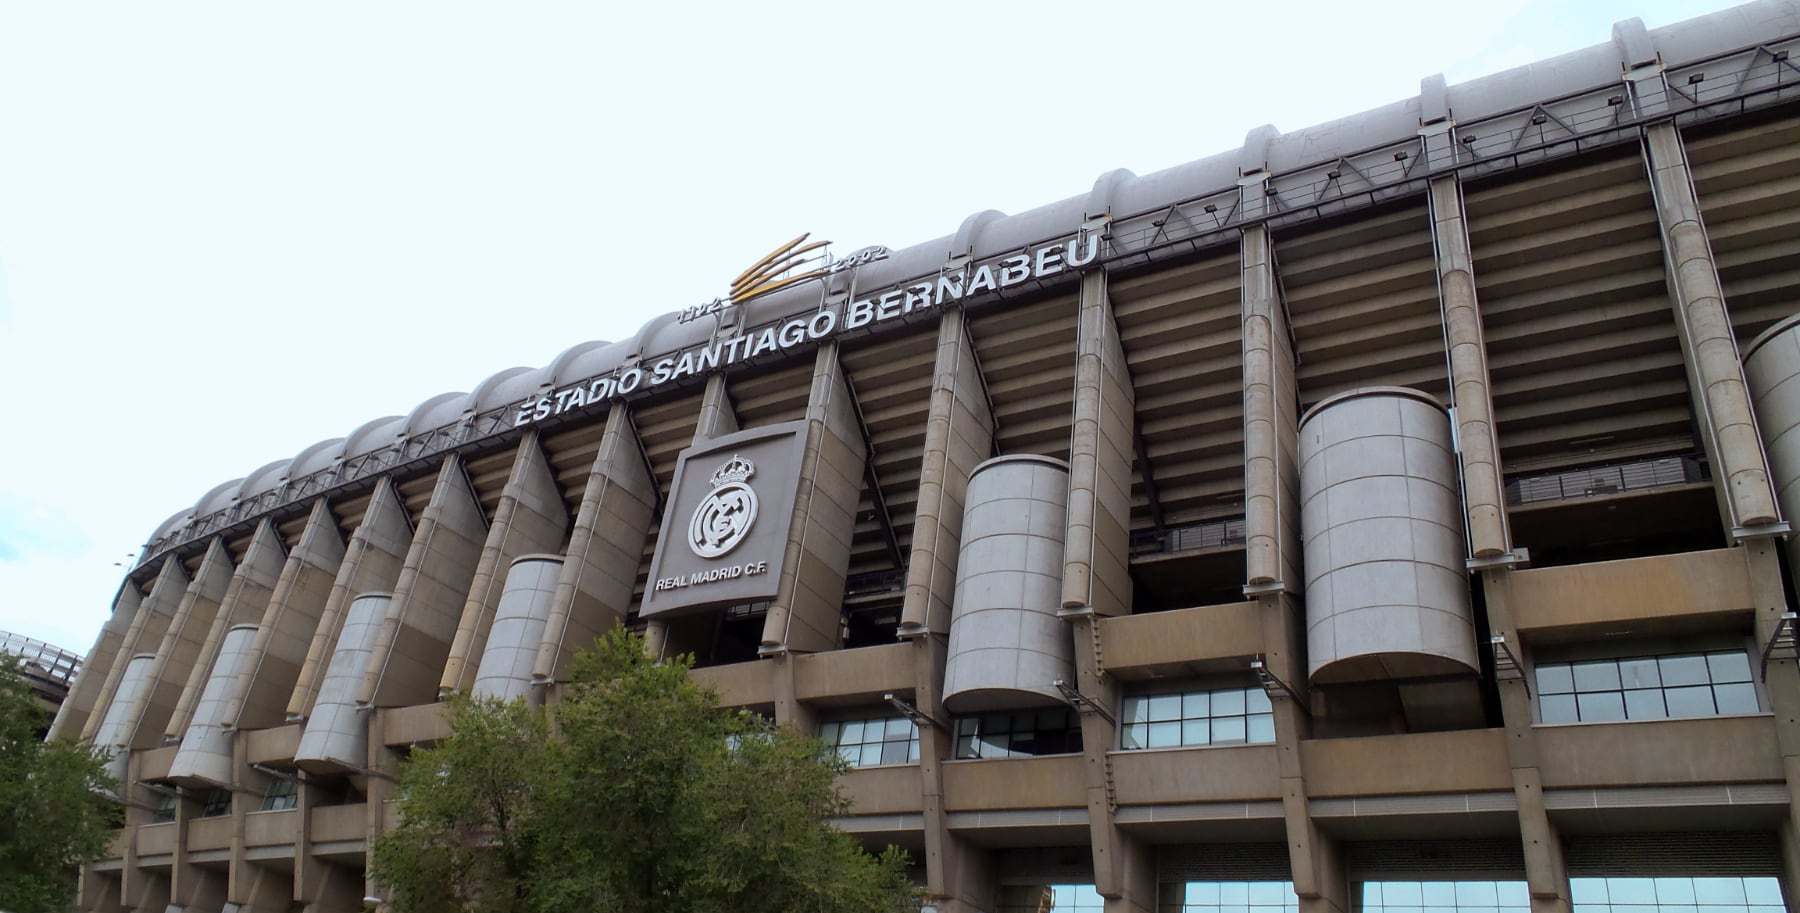 Home of Real Madrid CF